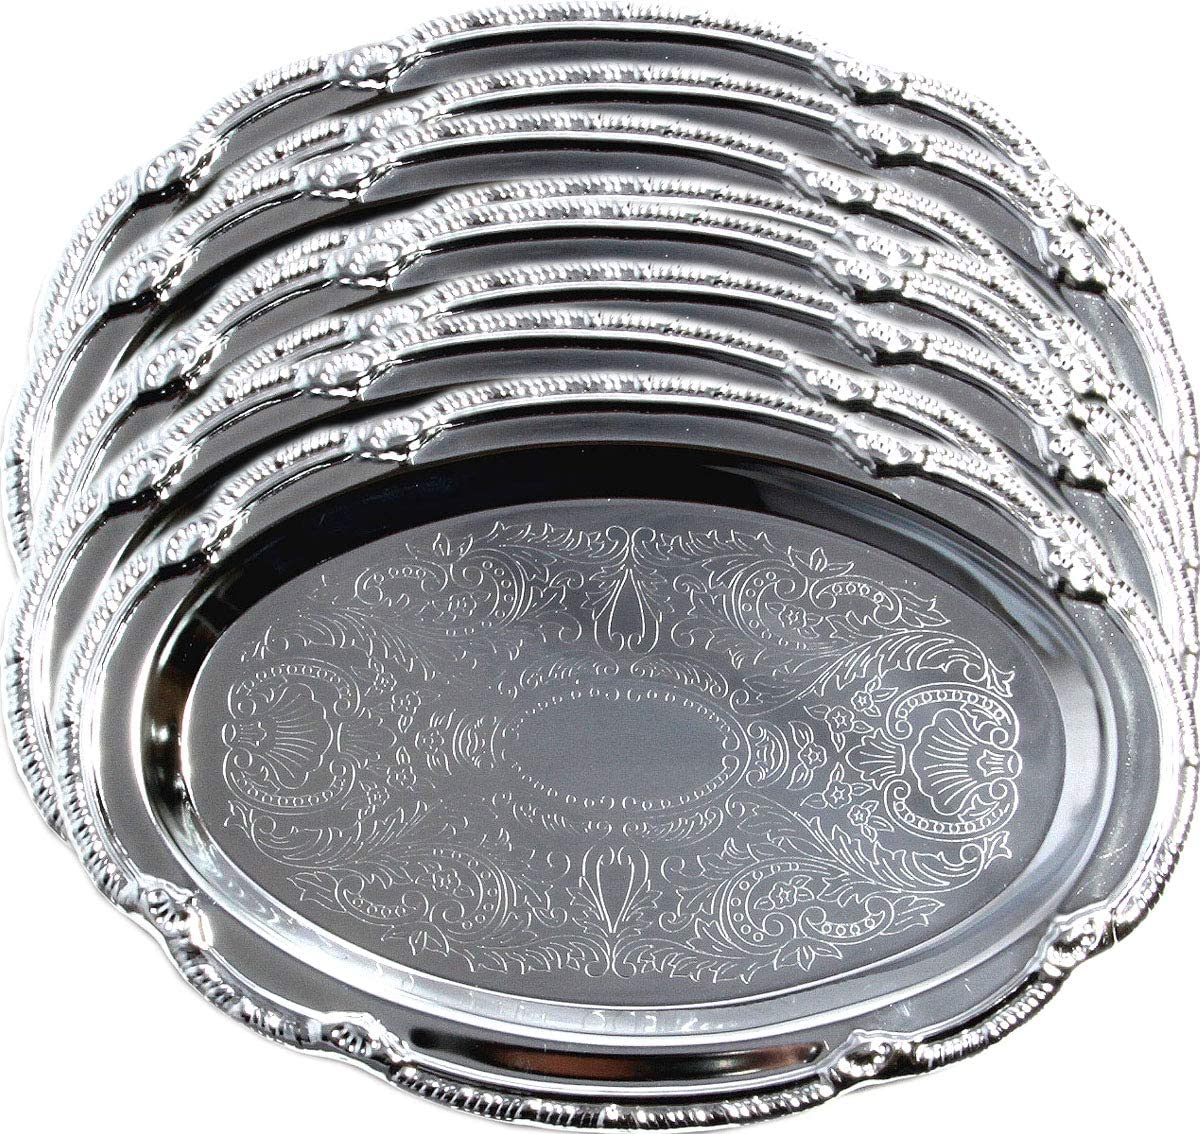 Maro Megastore (Pack of 8) 7-Inch x 4-Inch Oval Shape Chrome Plated Serving Tray Plate Food Art Deco Floral Pattern Engrave Party Wedding Birthday Platter Plate Gift base (Extra Small) T125XS-8PK